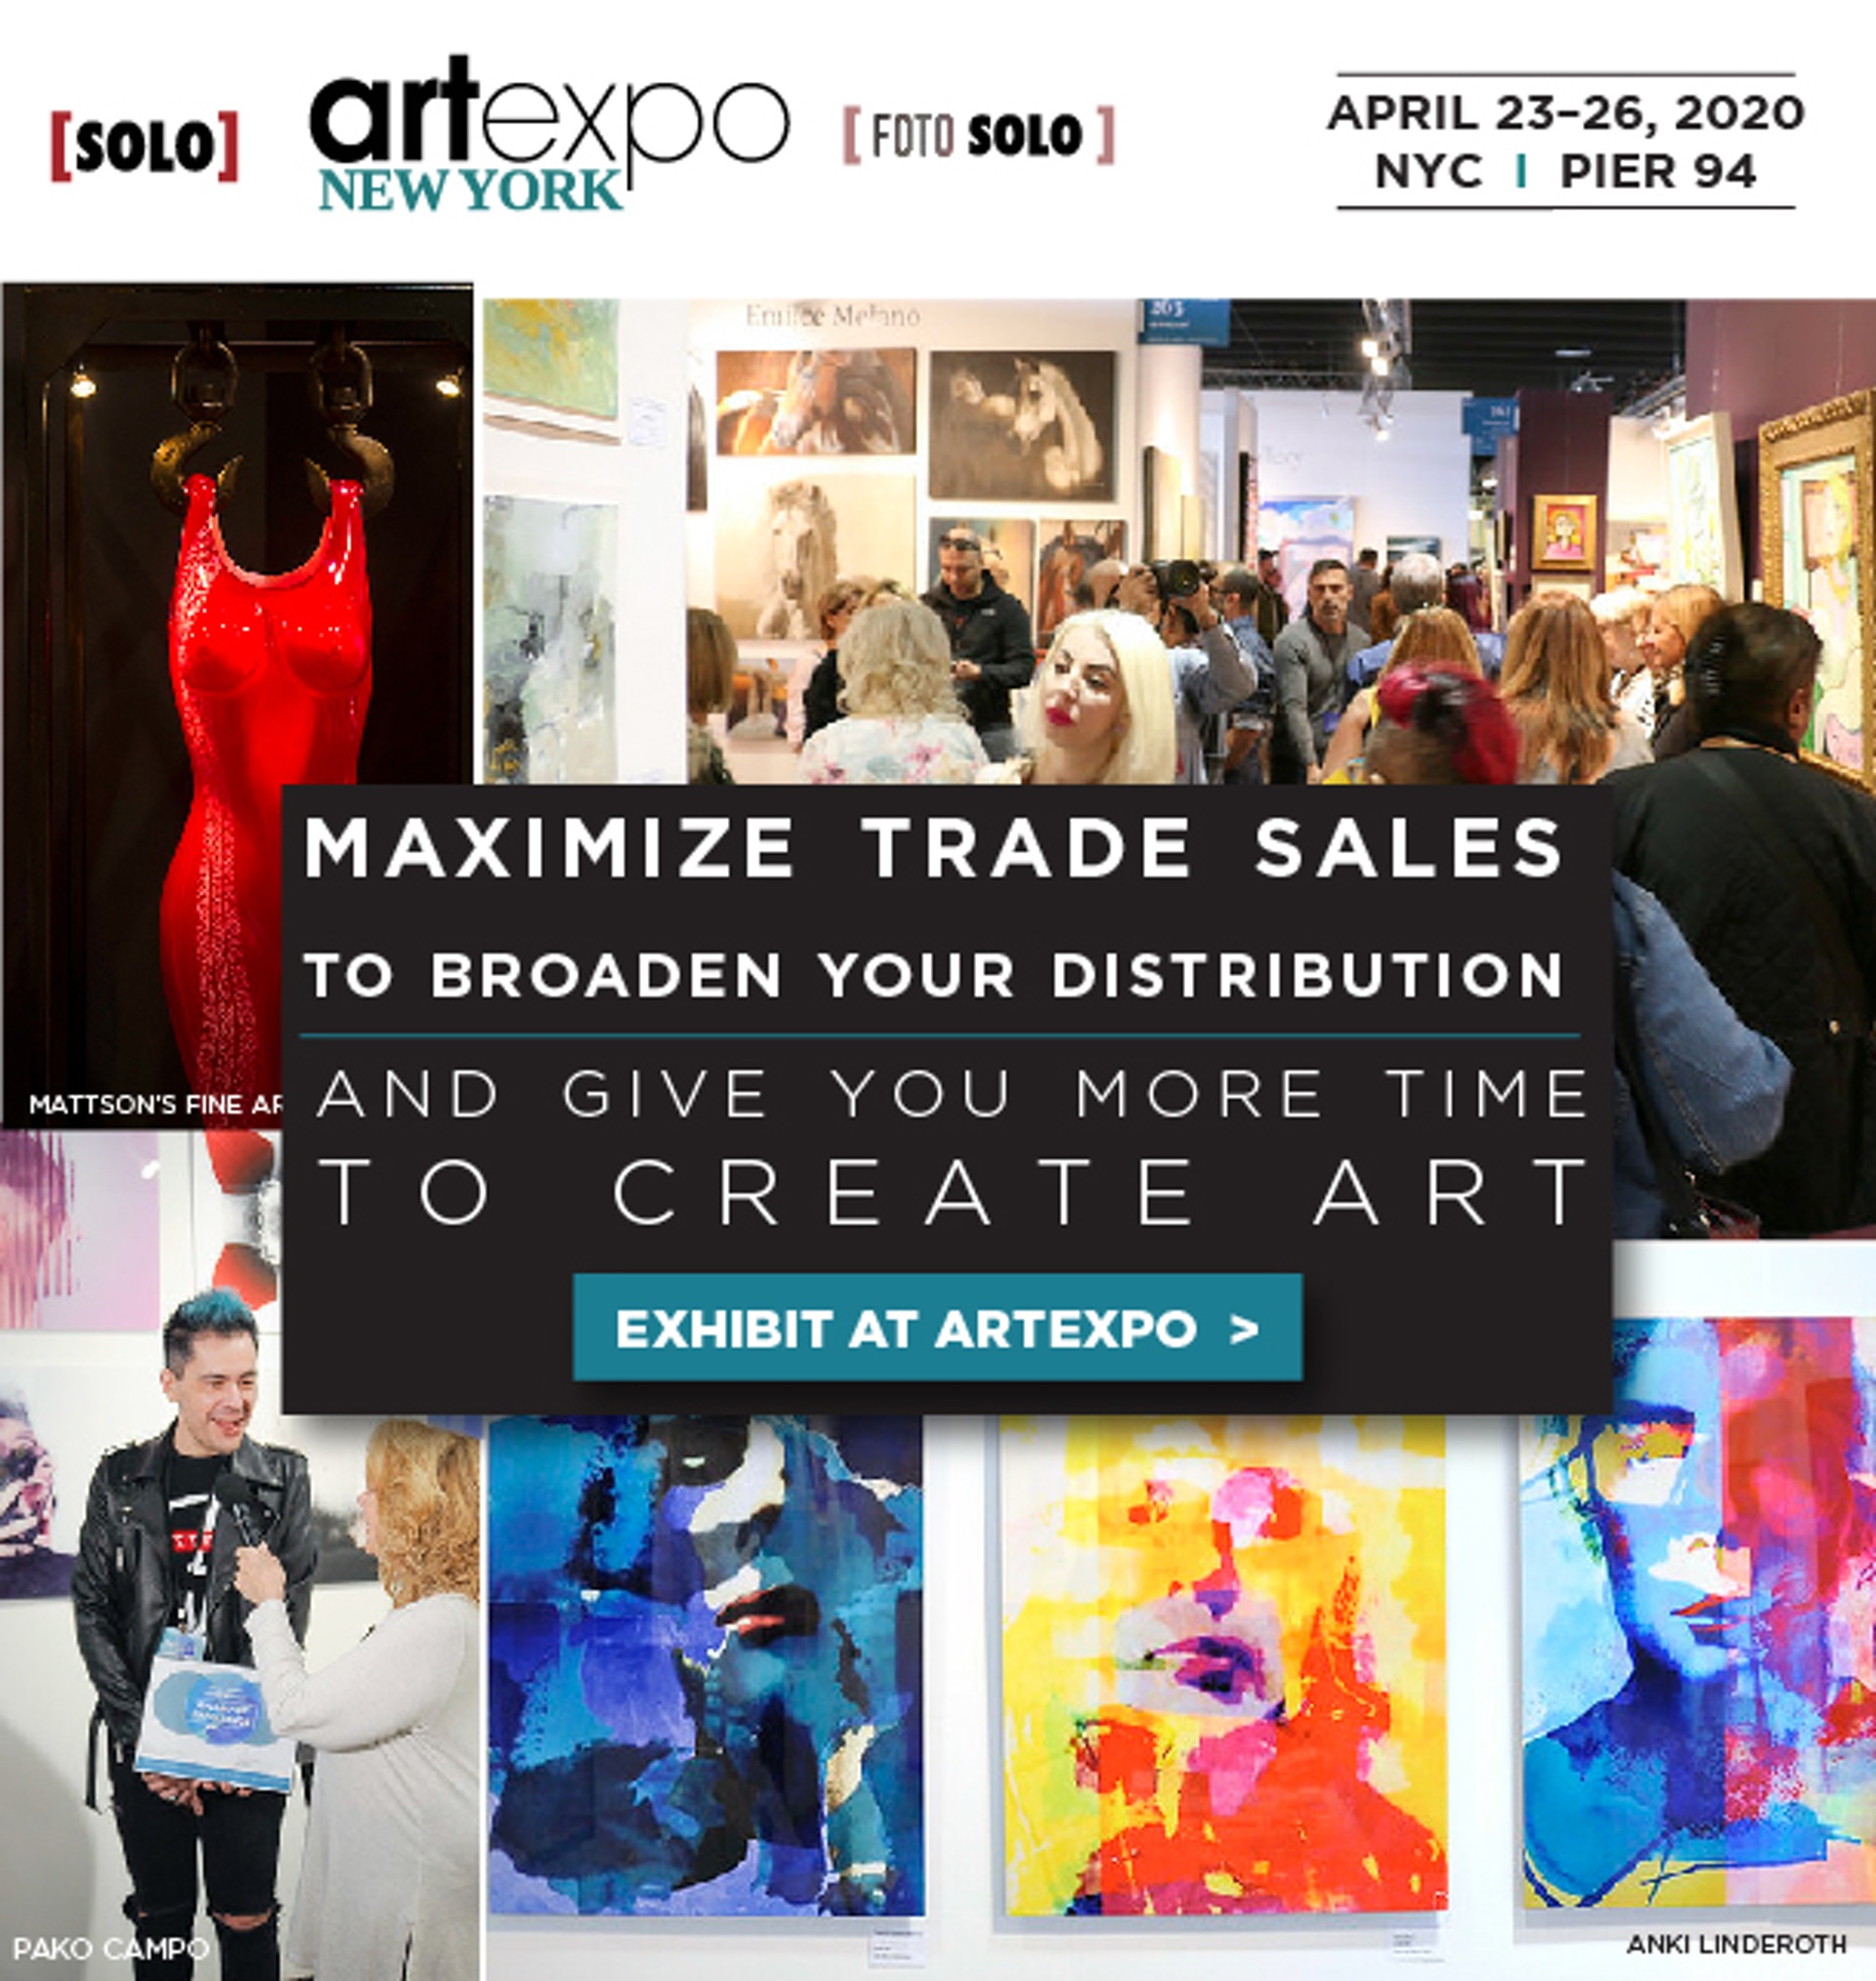 Artexpo New York Newsletter. Are trade shows right for your art business?